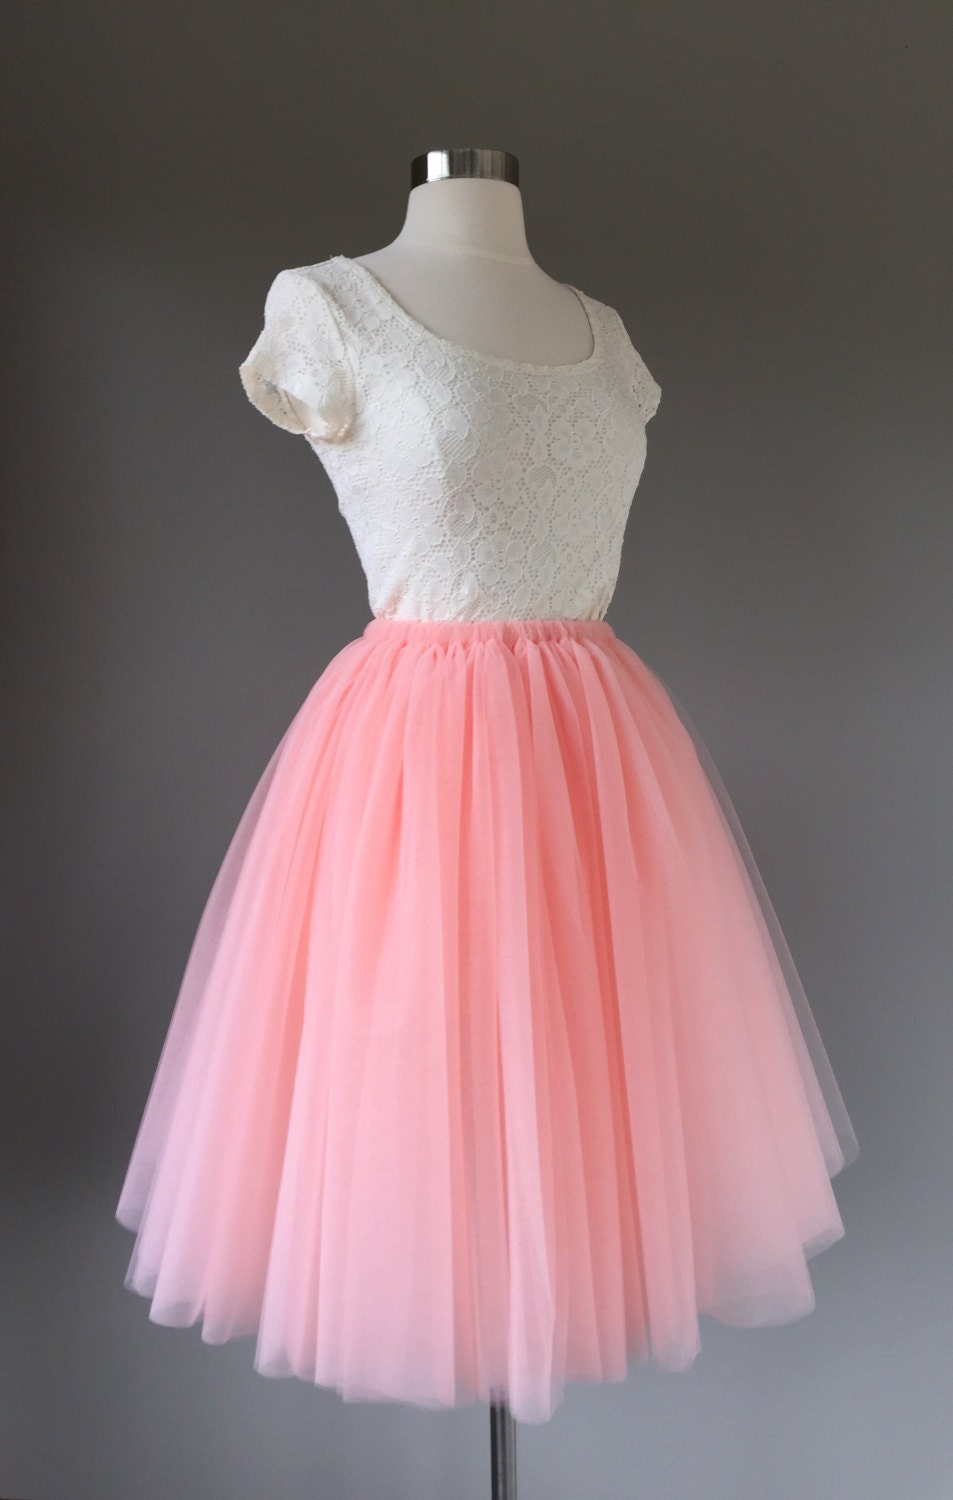 Tulle Skirt Adult Tutu Blush Tutu Tulle Skirt Peach Tulle